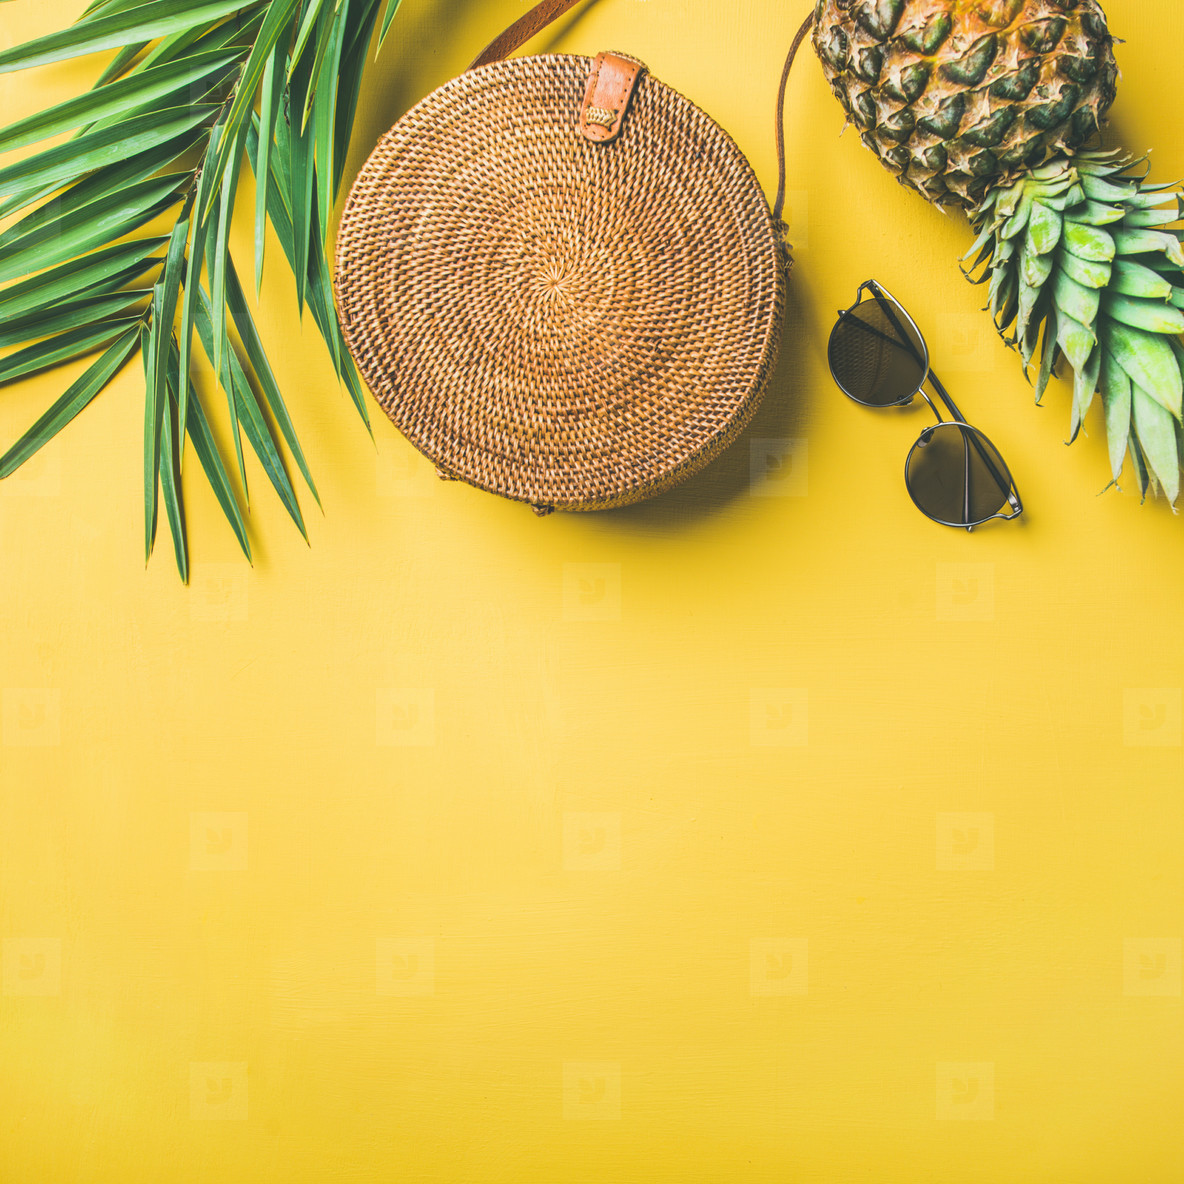 Yellow background images